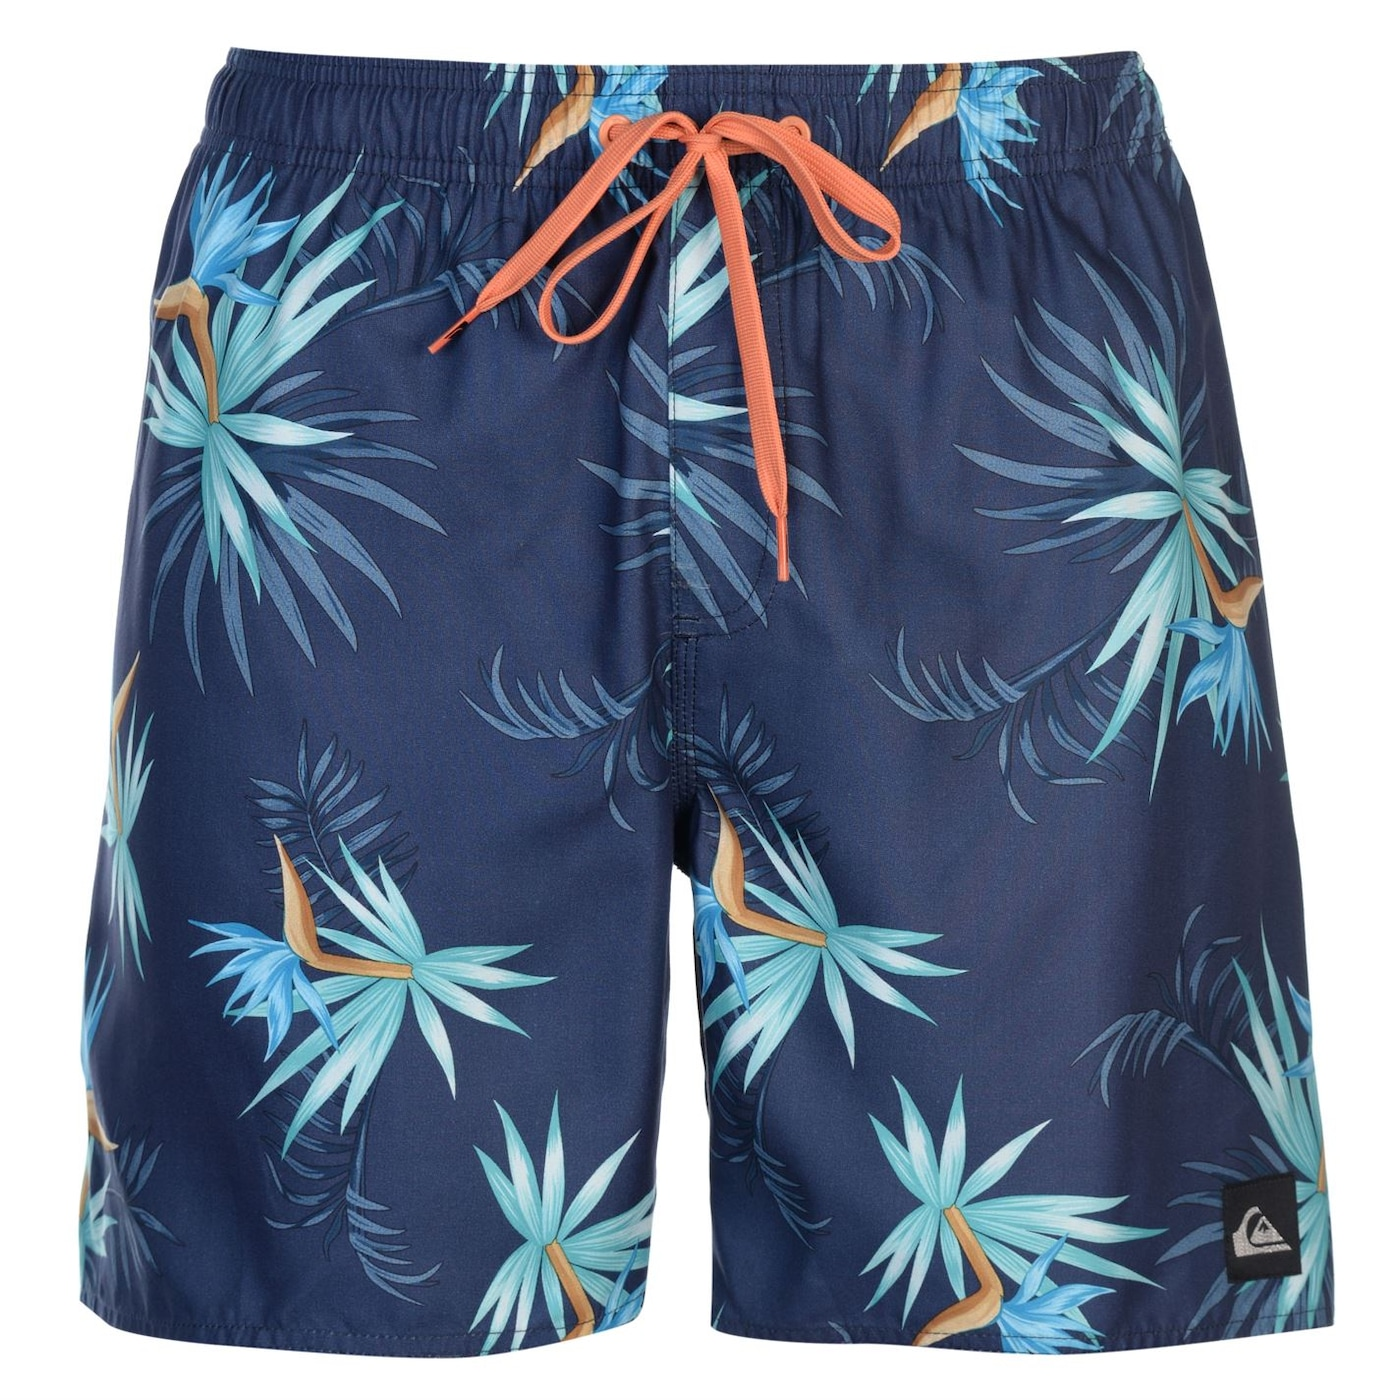 Quiksilver Cocktail Board Shorts Mens